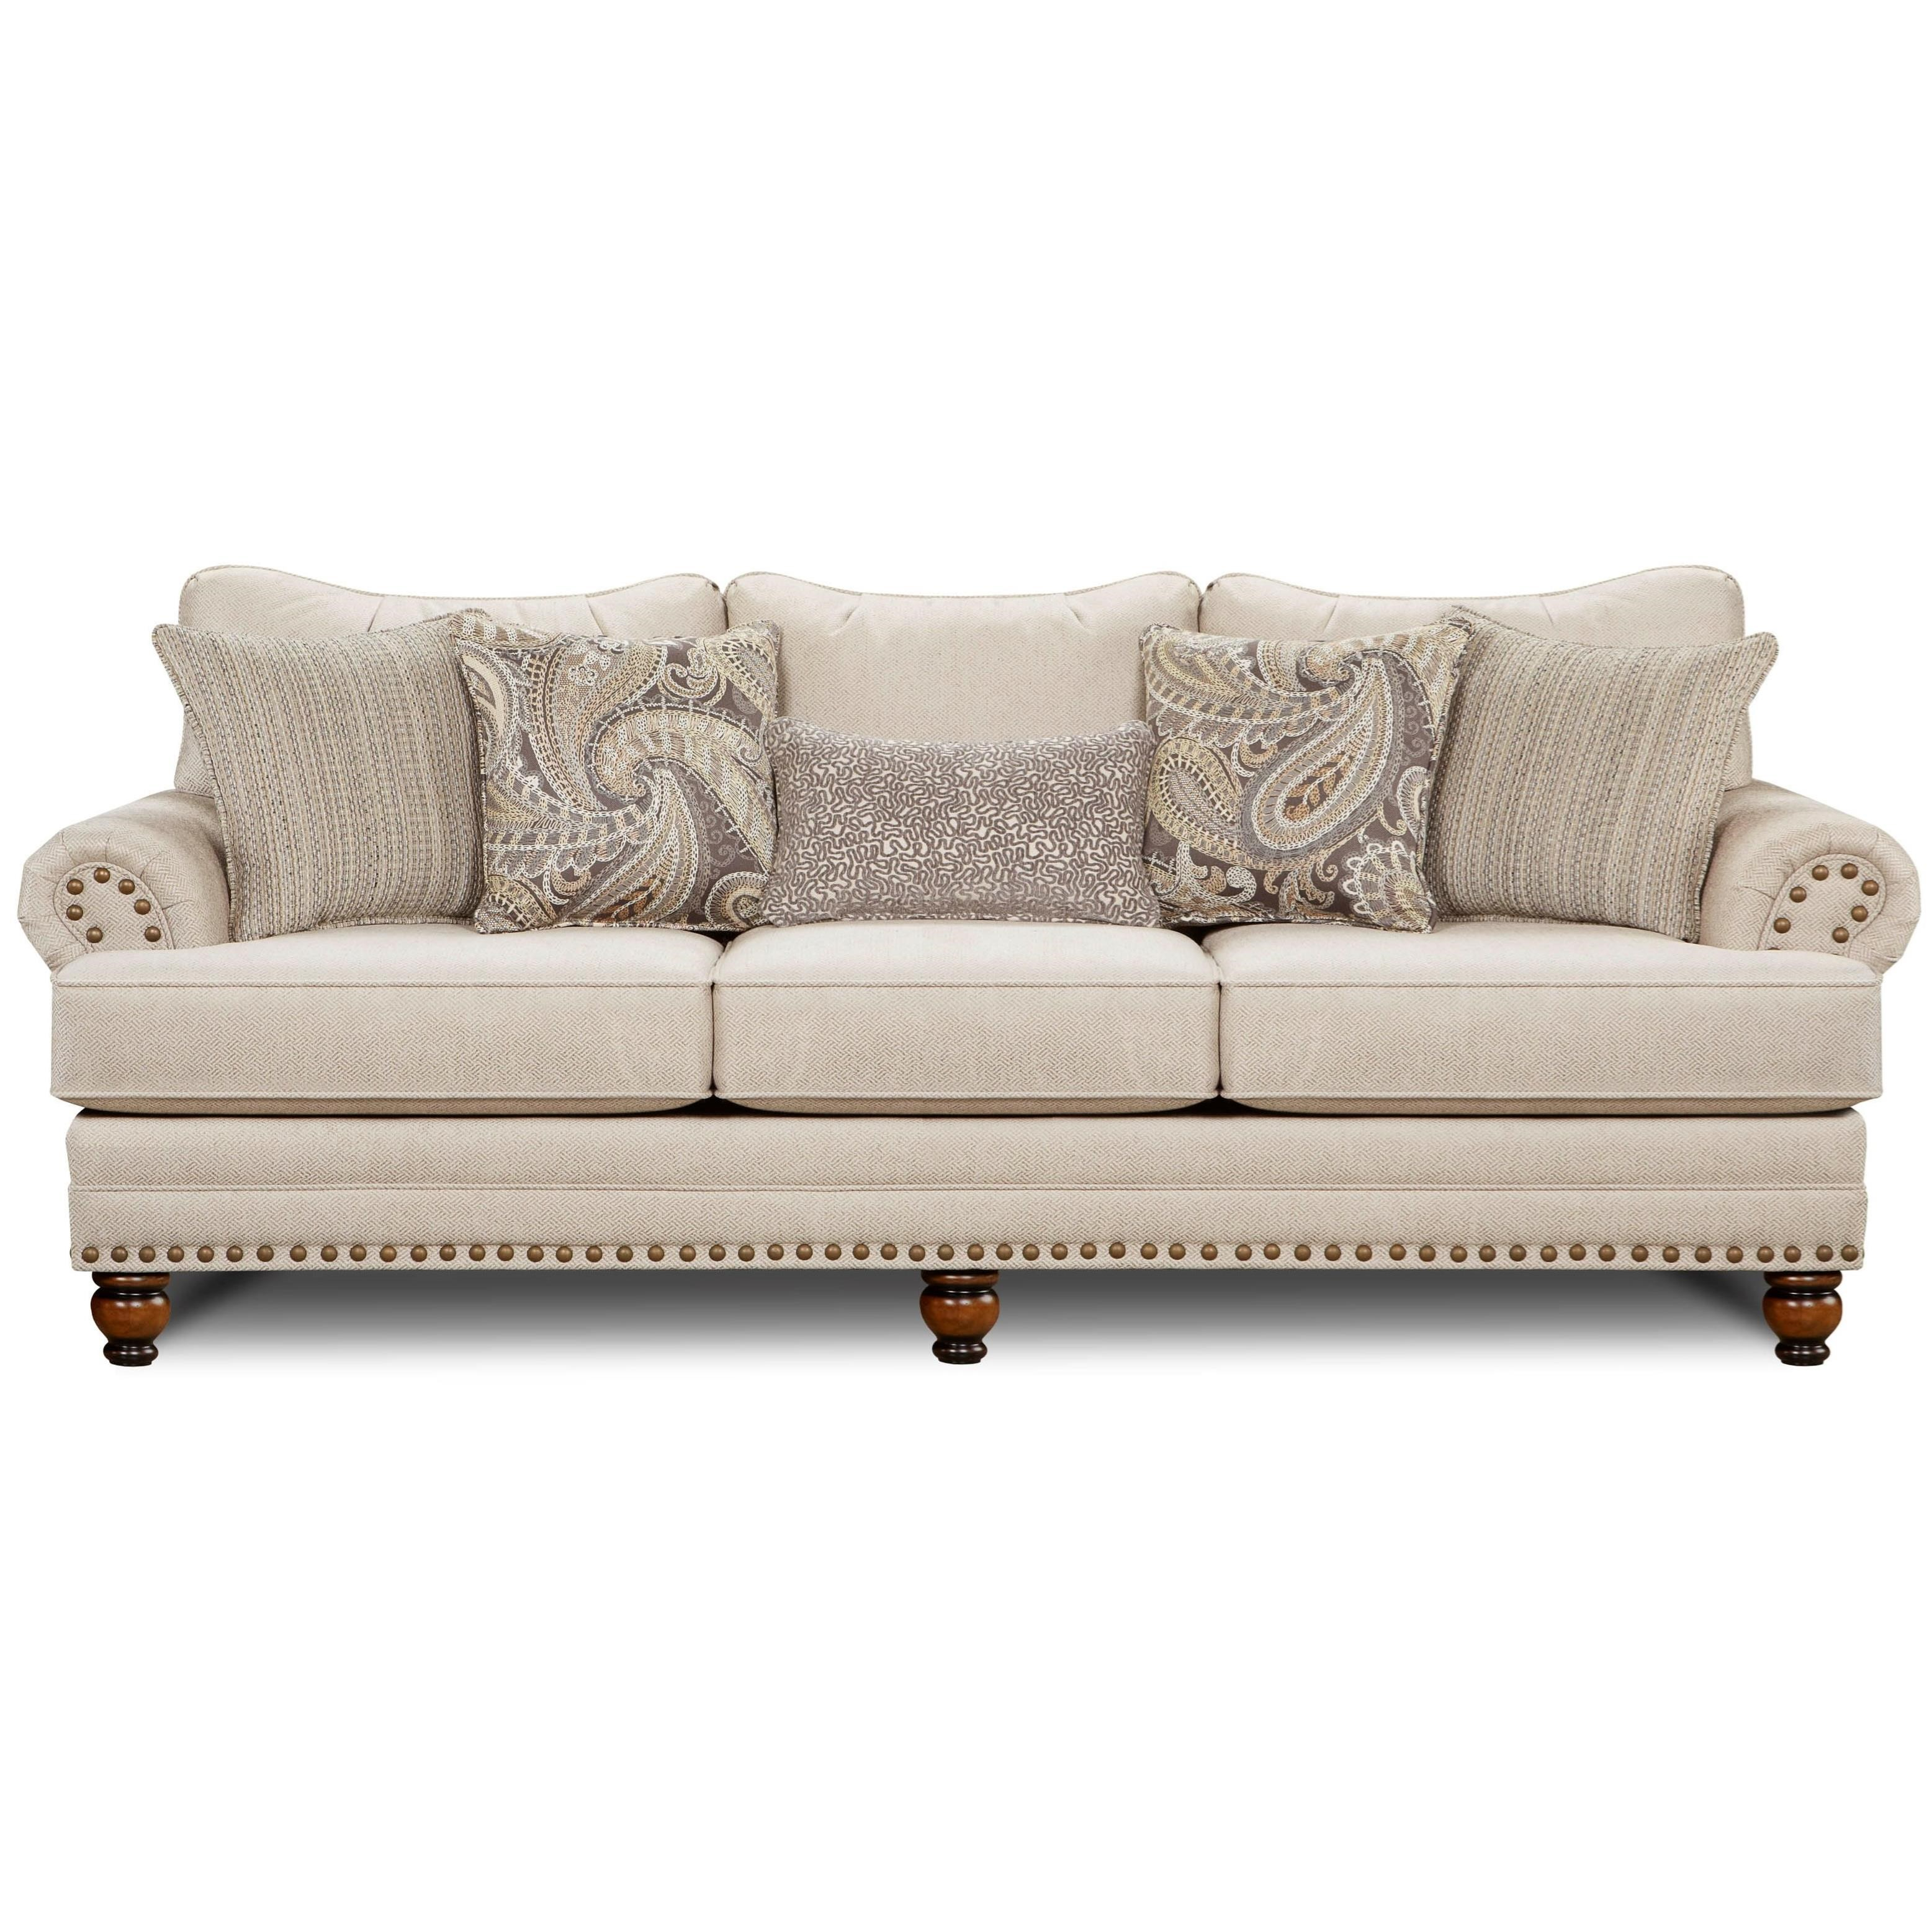 2820 Sofa by Fusion Furniture at Furniture Superstore - Rochester, MN